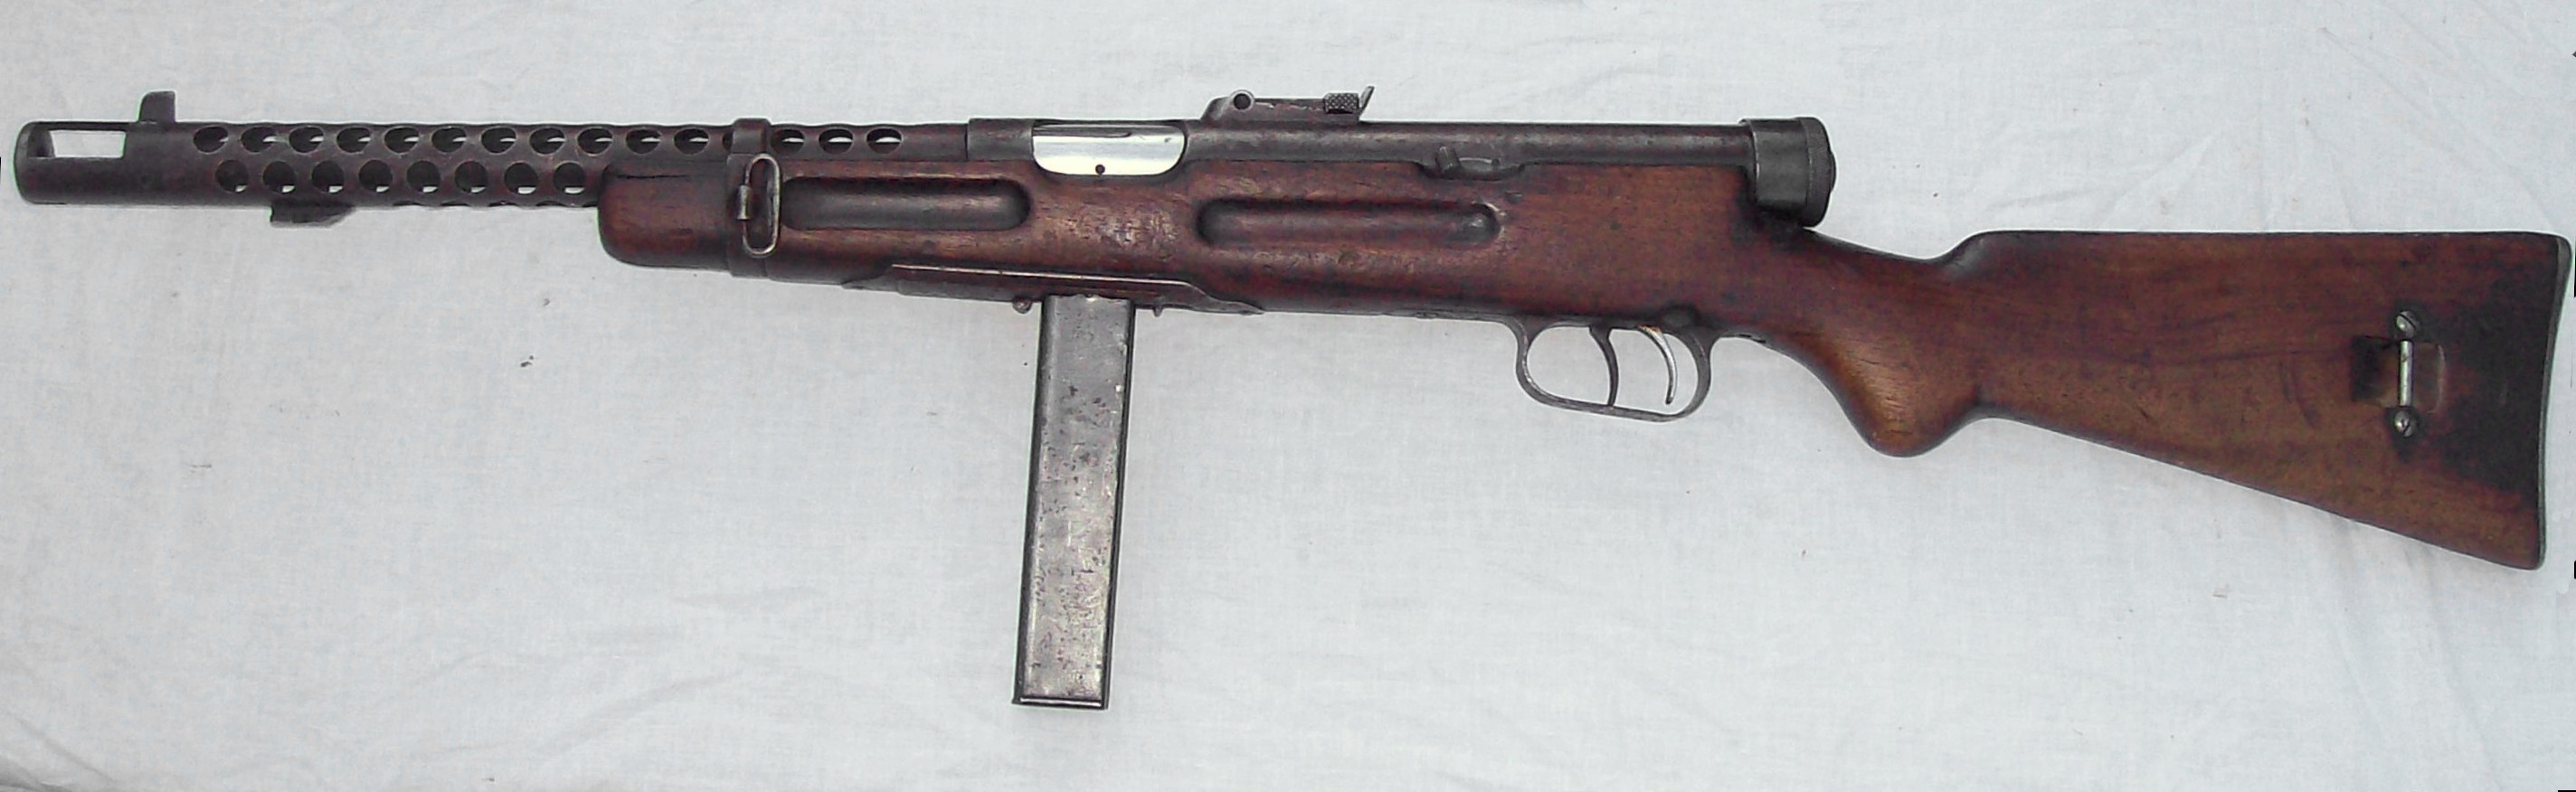 https://upload.wikimedia.org/wikipedia/commons/2/2c/Beretta_38.jpg